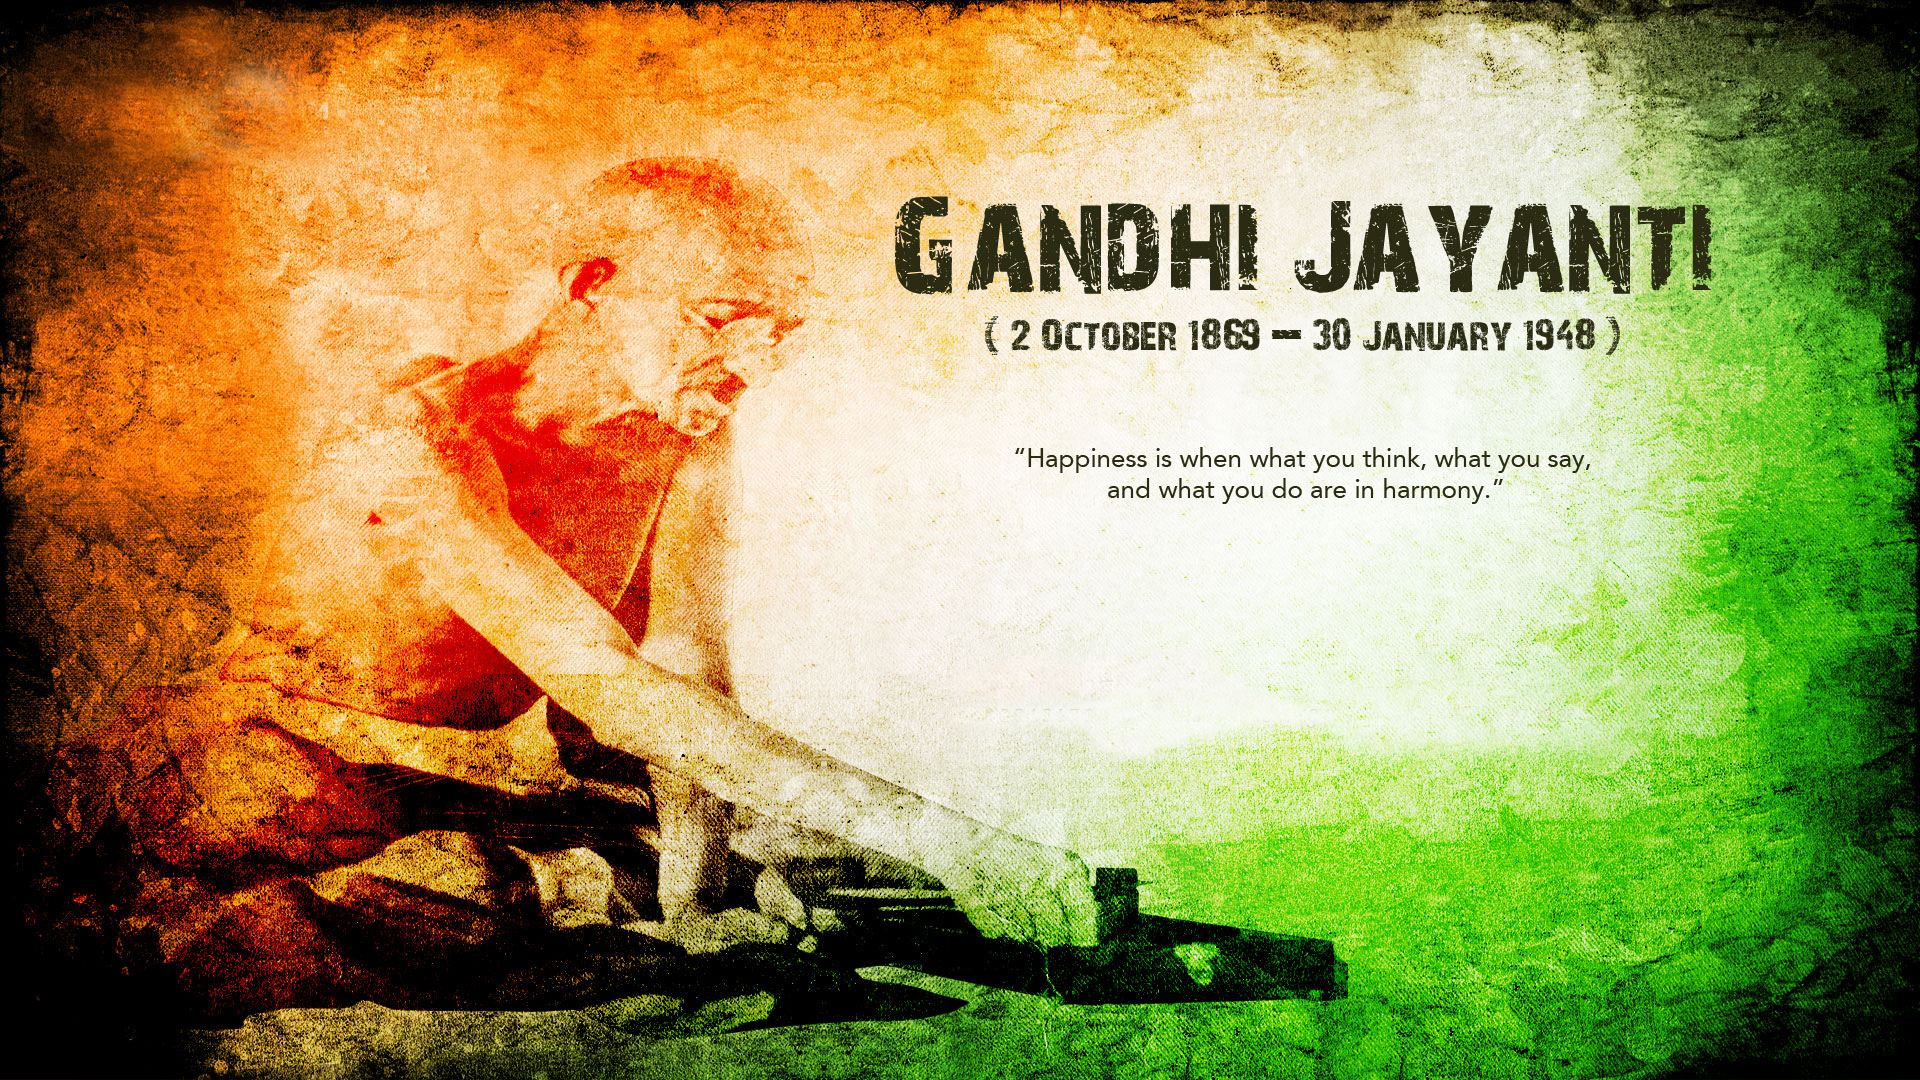 essay on gandhiji father of our nation 91 121 113 106 essay on gandhiji father of our nation